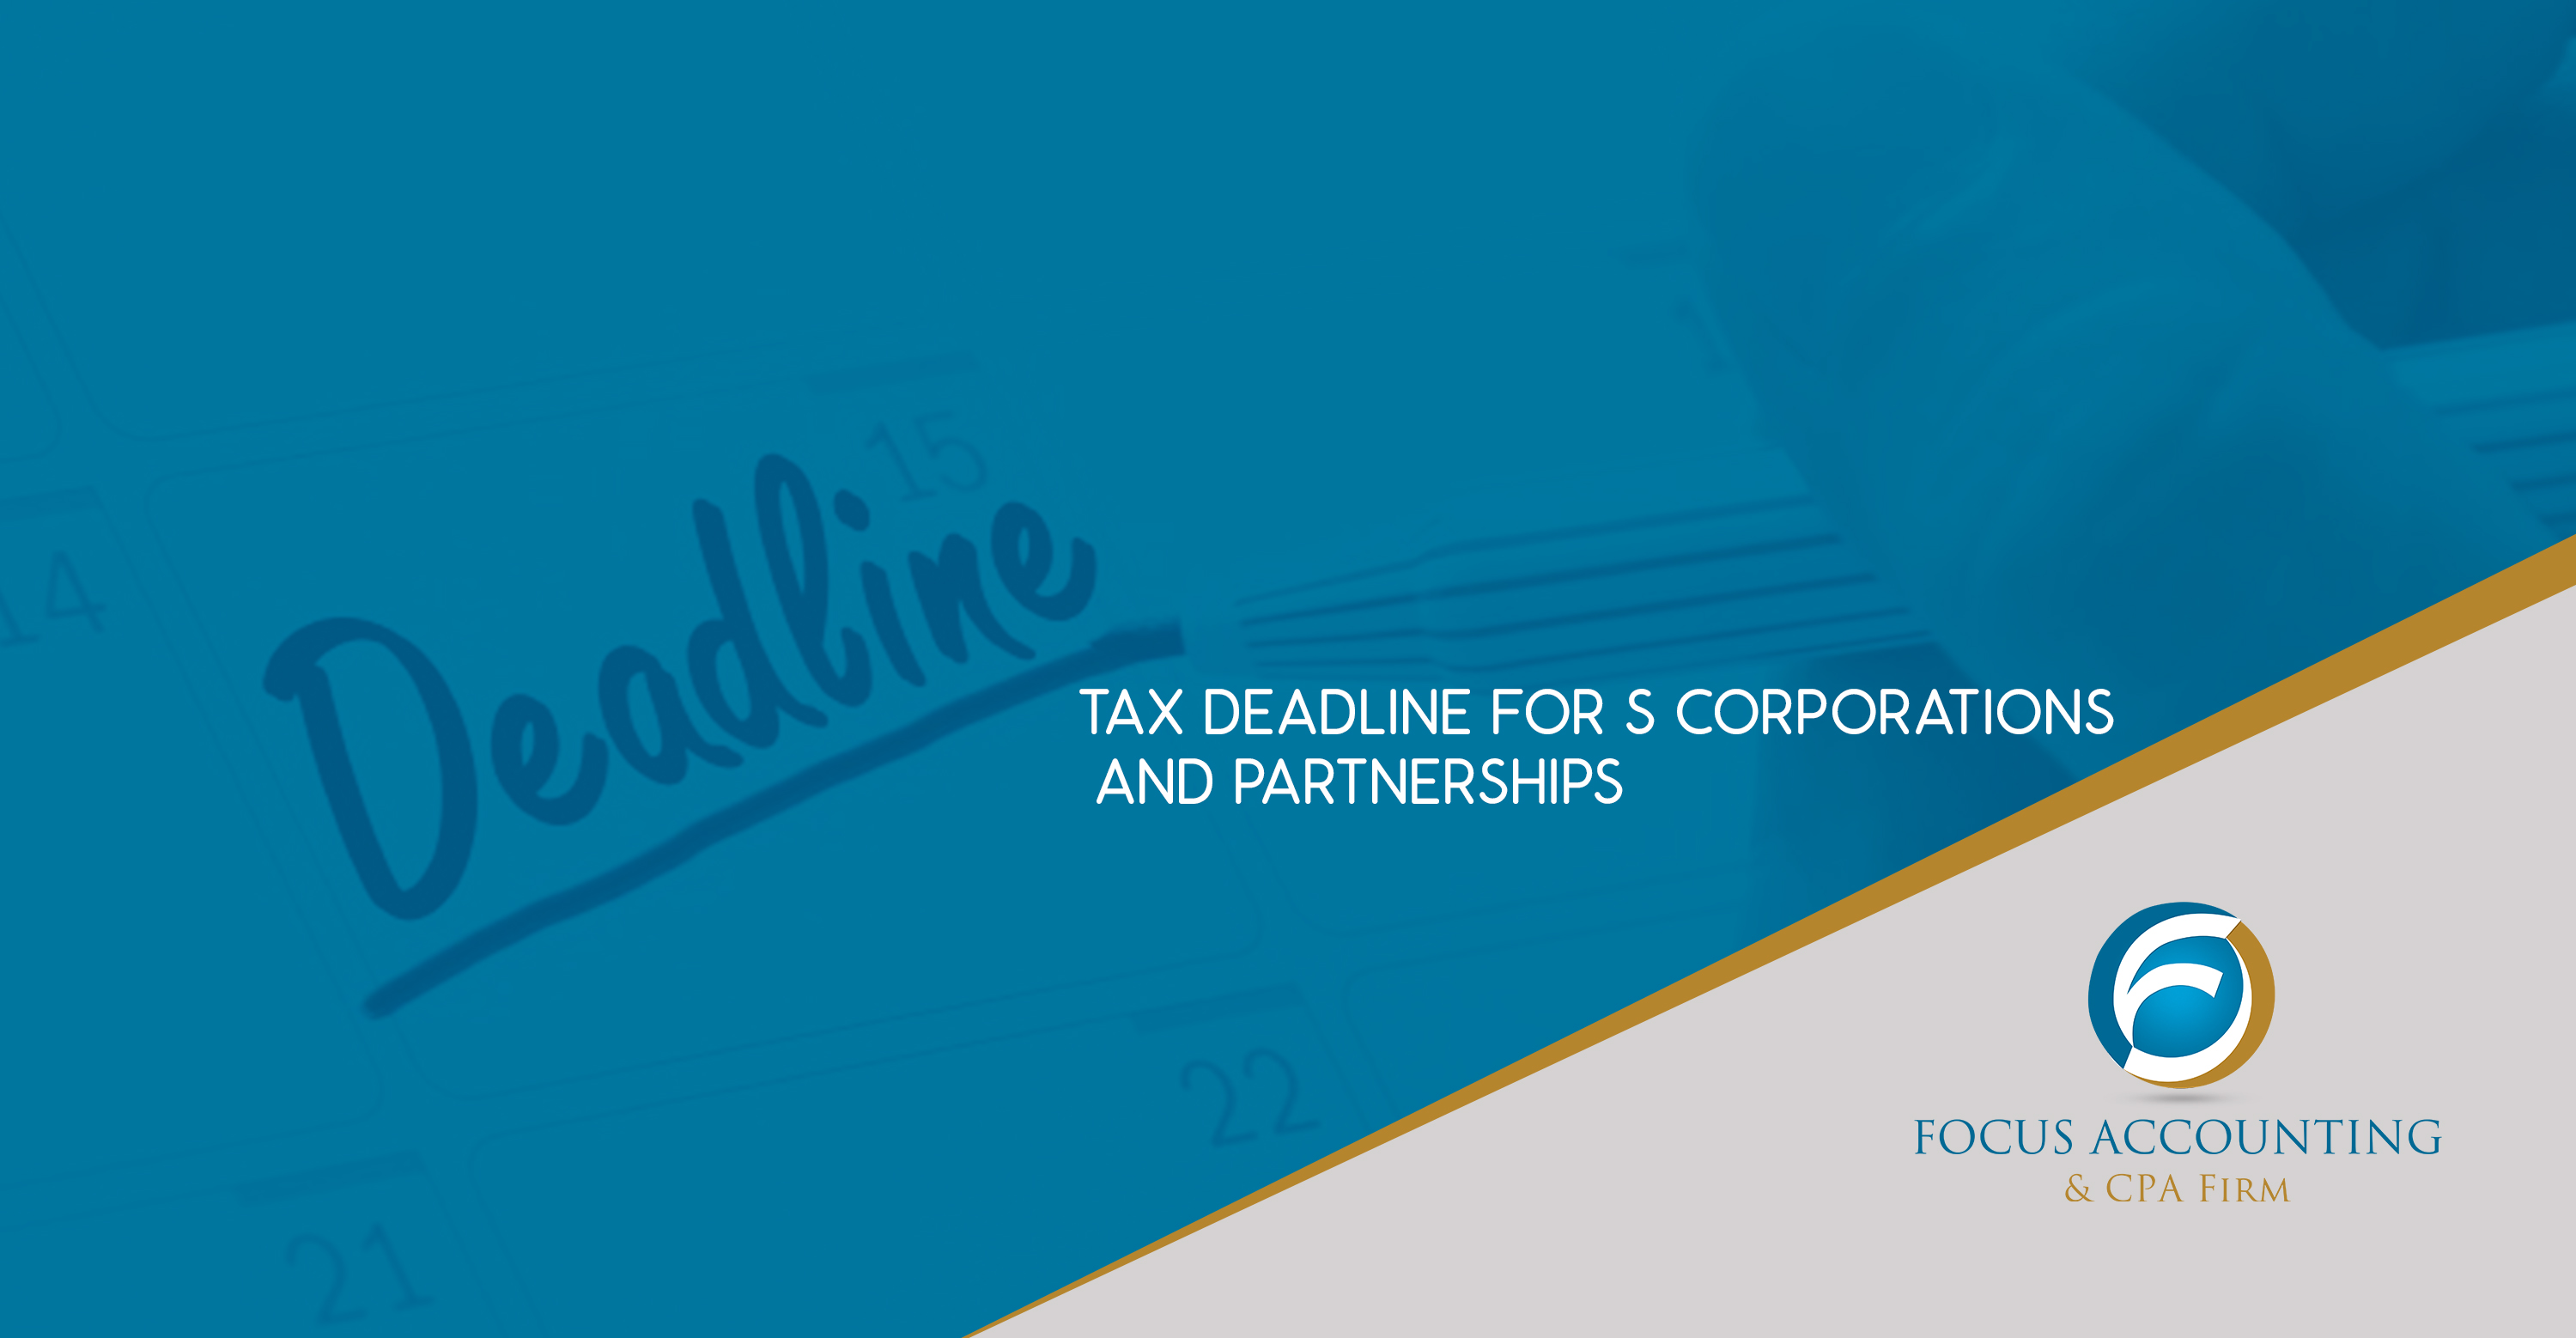 Tax Deadline for S Corporations and Partnerships